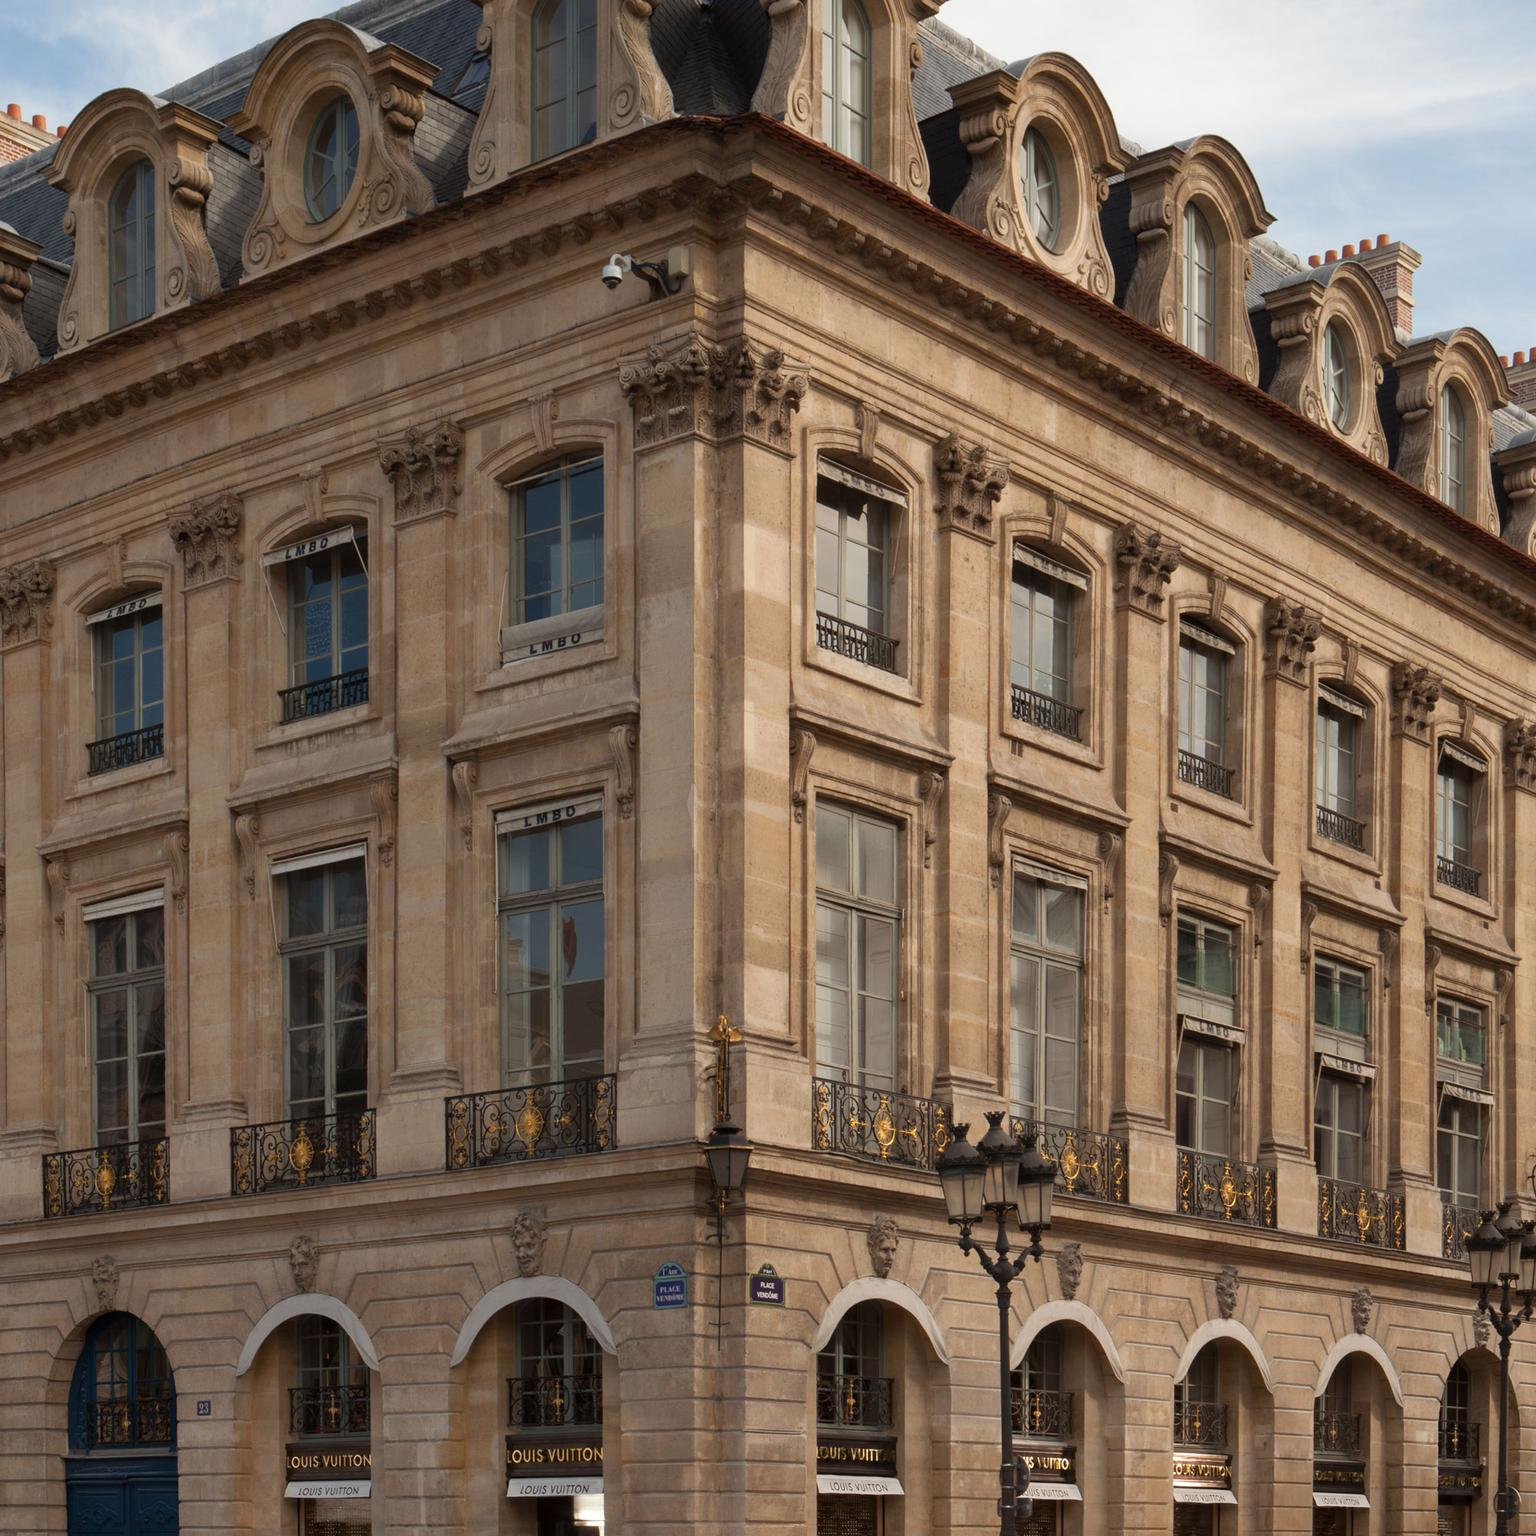 Louis Vuitton Paris Boutique exterior